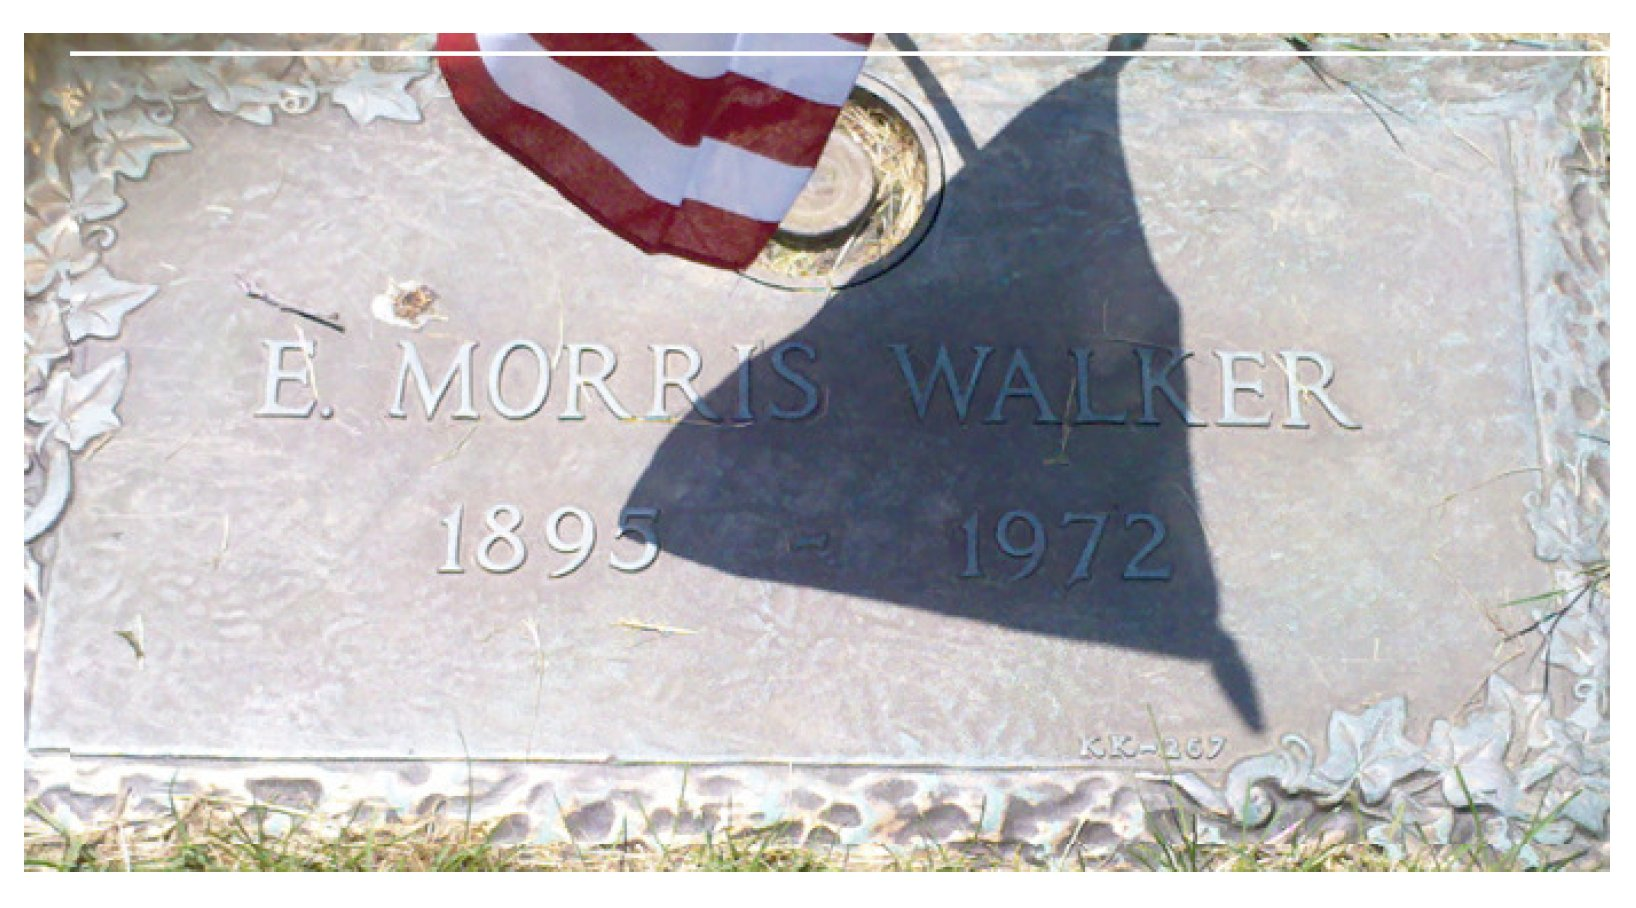 memorial marker Edward Morris Walker2